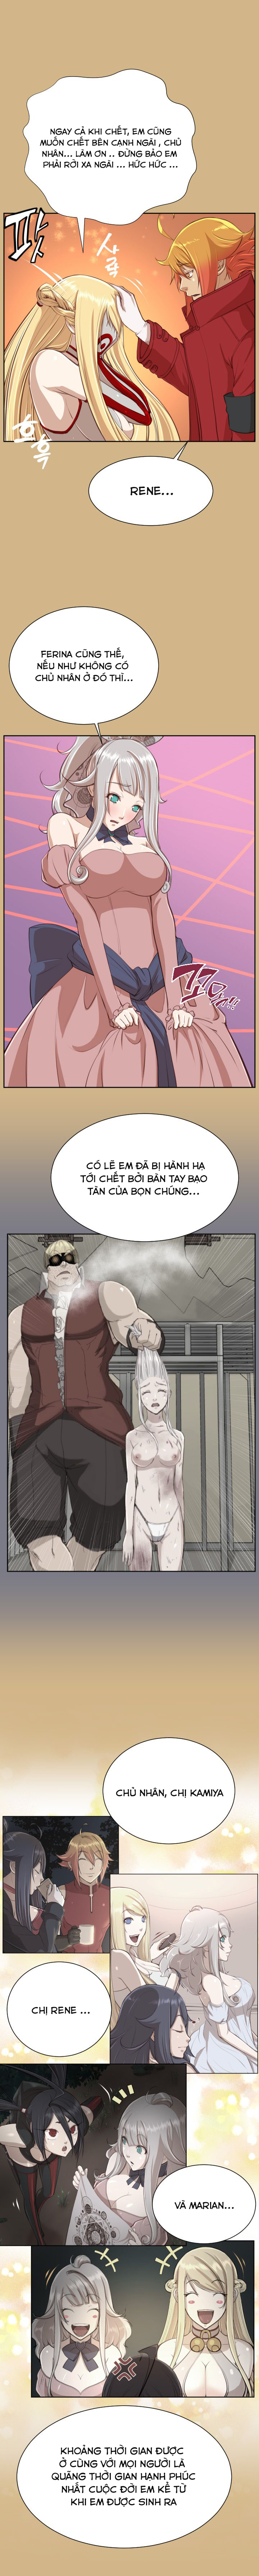 HentaiVN.net - Ảnh 5 - Yahalue - Aharoo - Ahab road; 亚哈路 - Chap 43